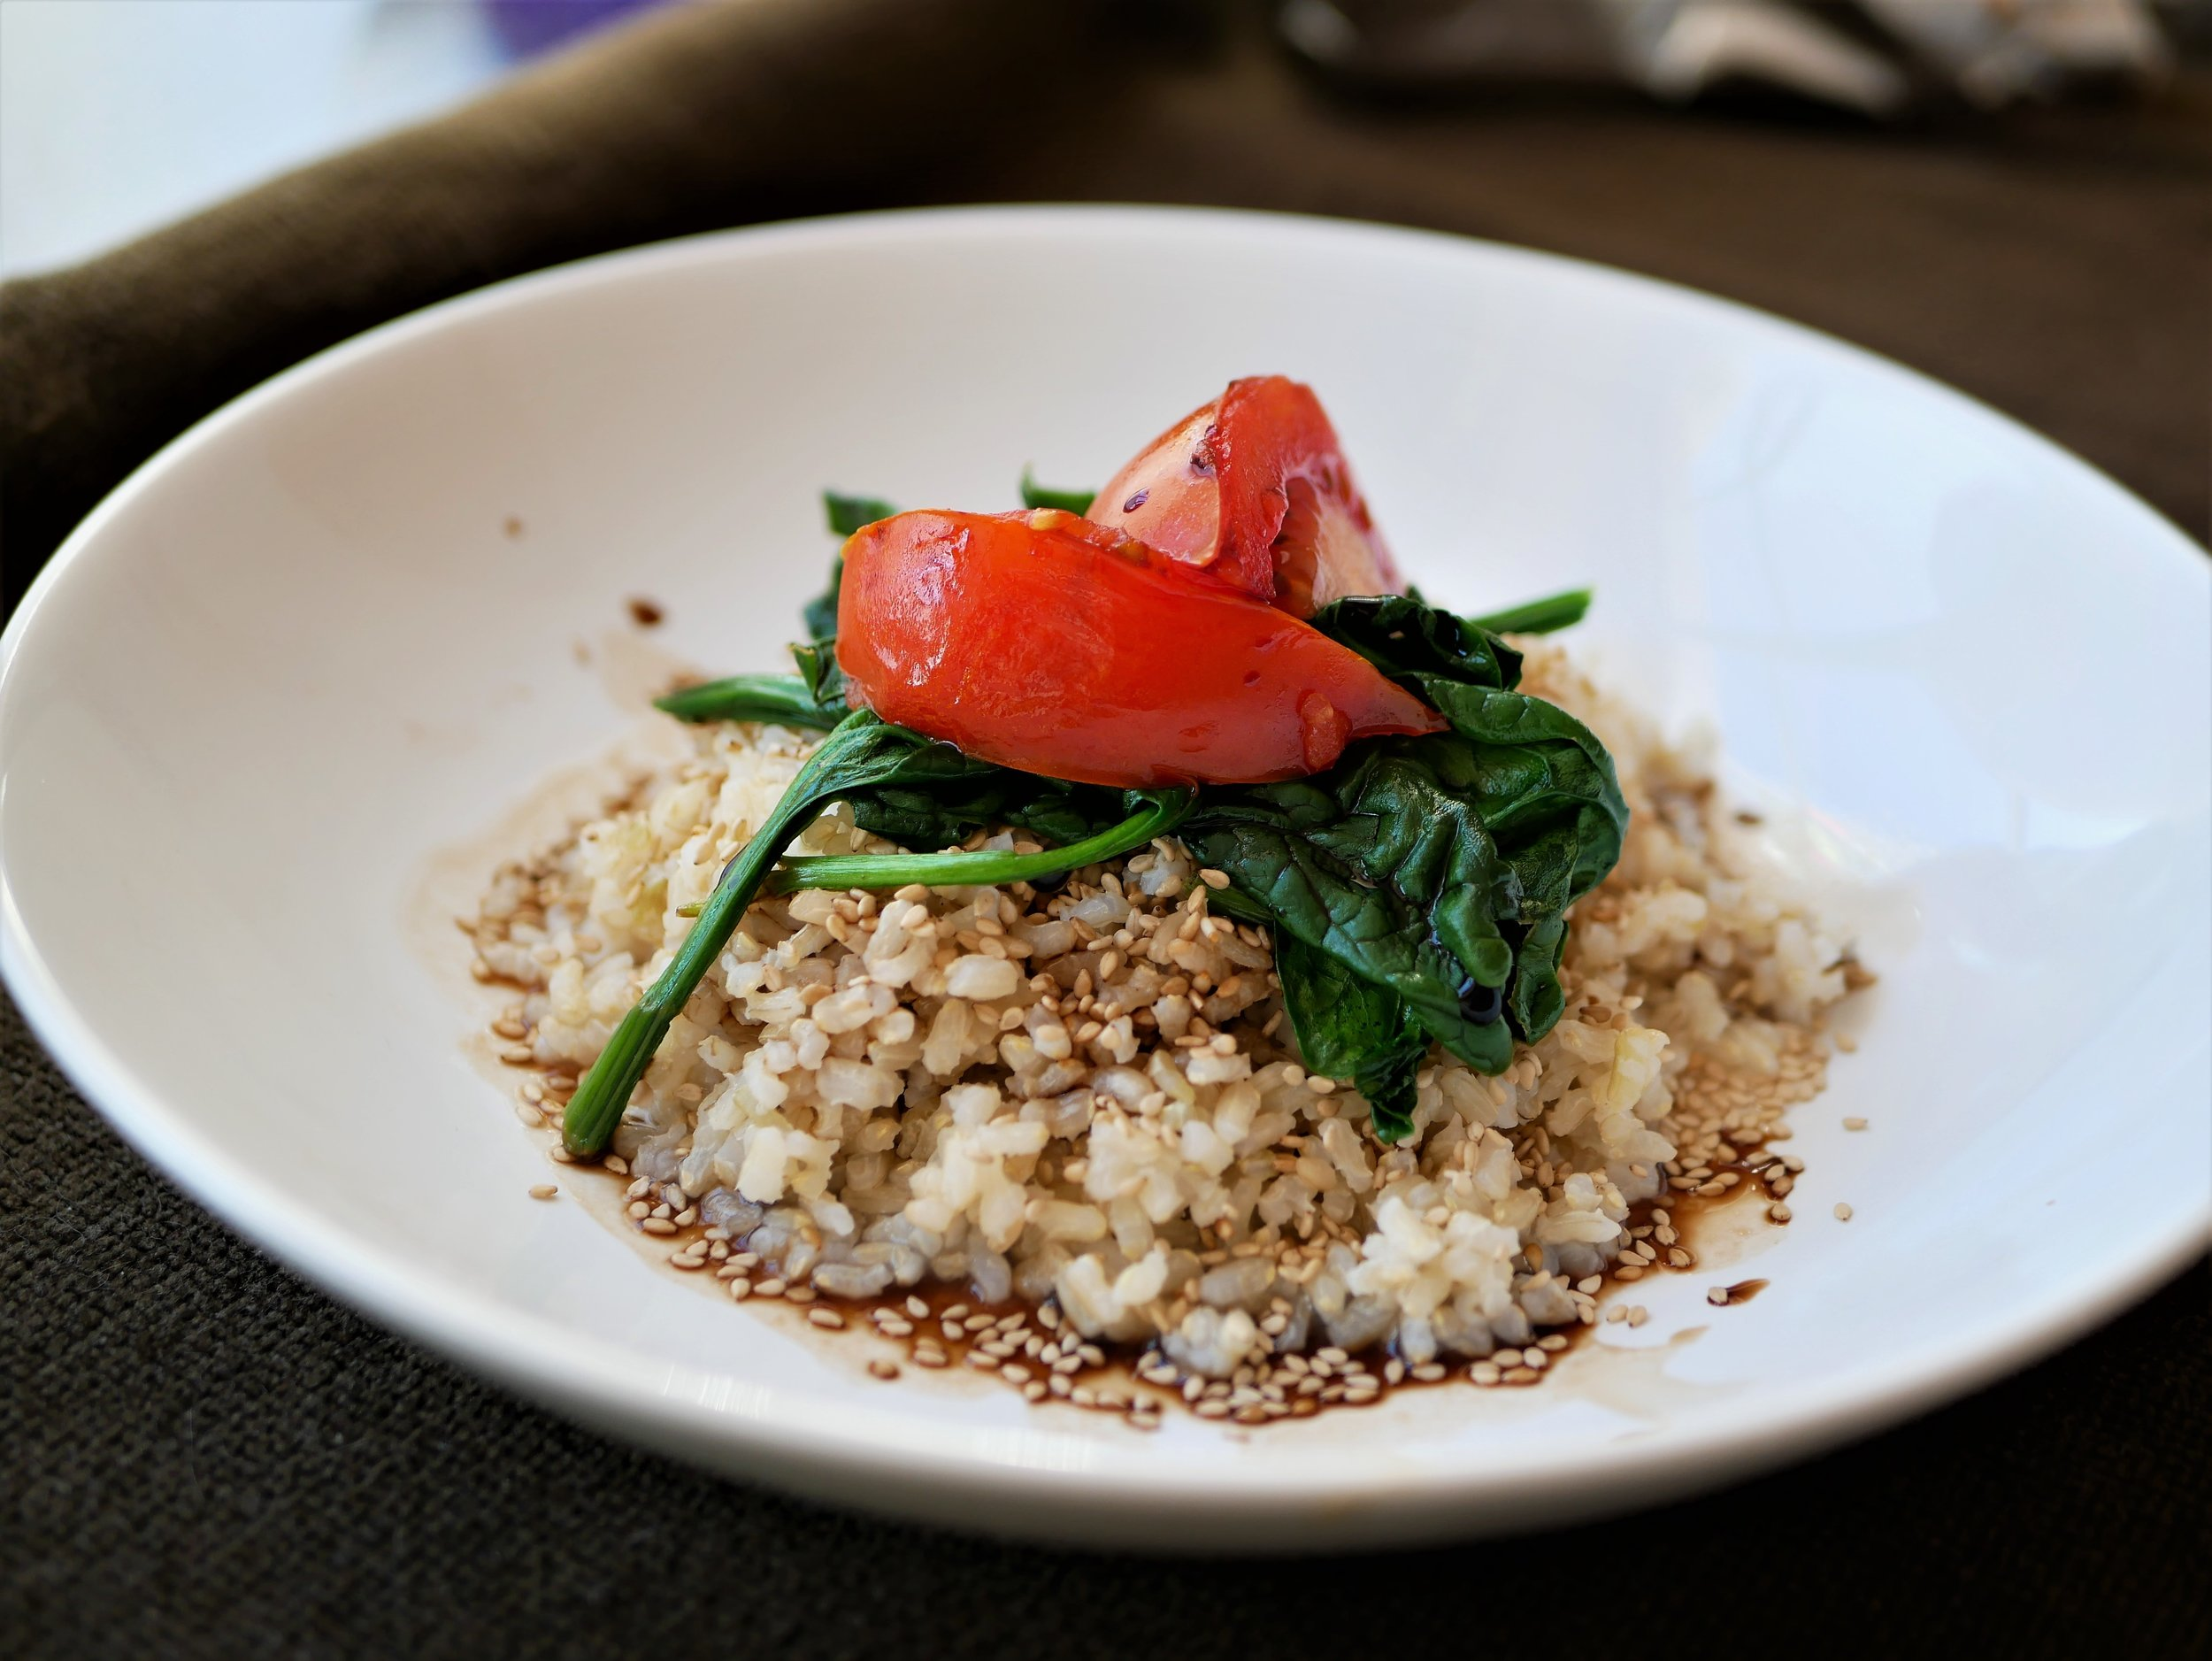 sesame rice topped with spinach and tomato